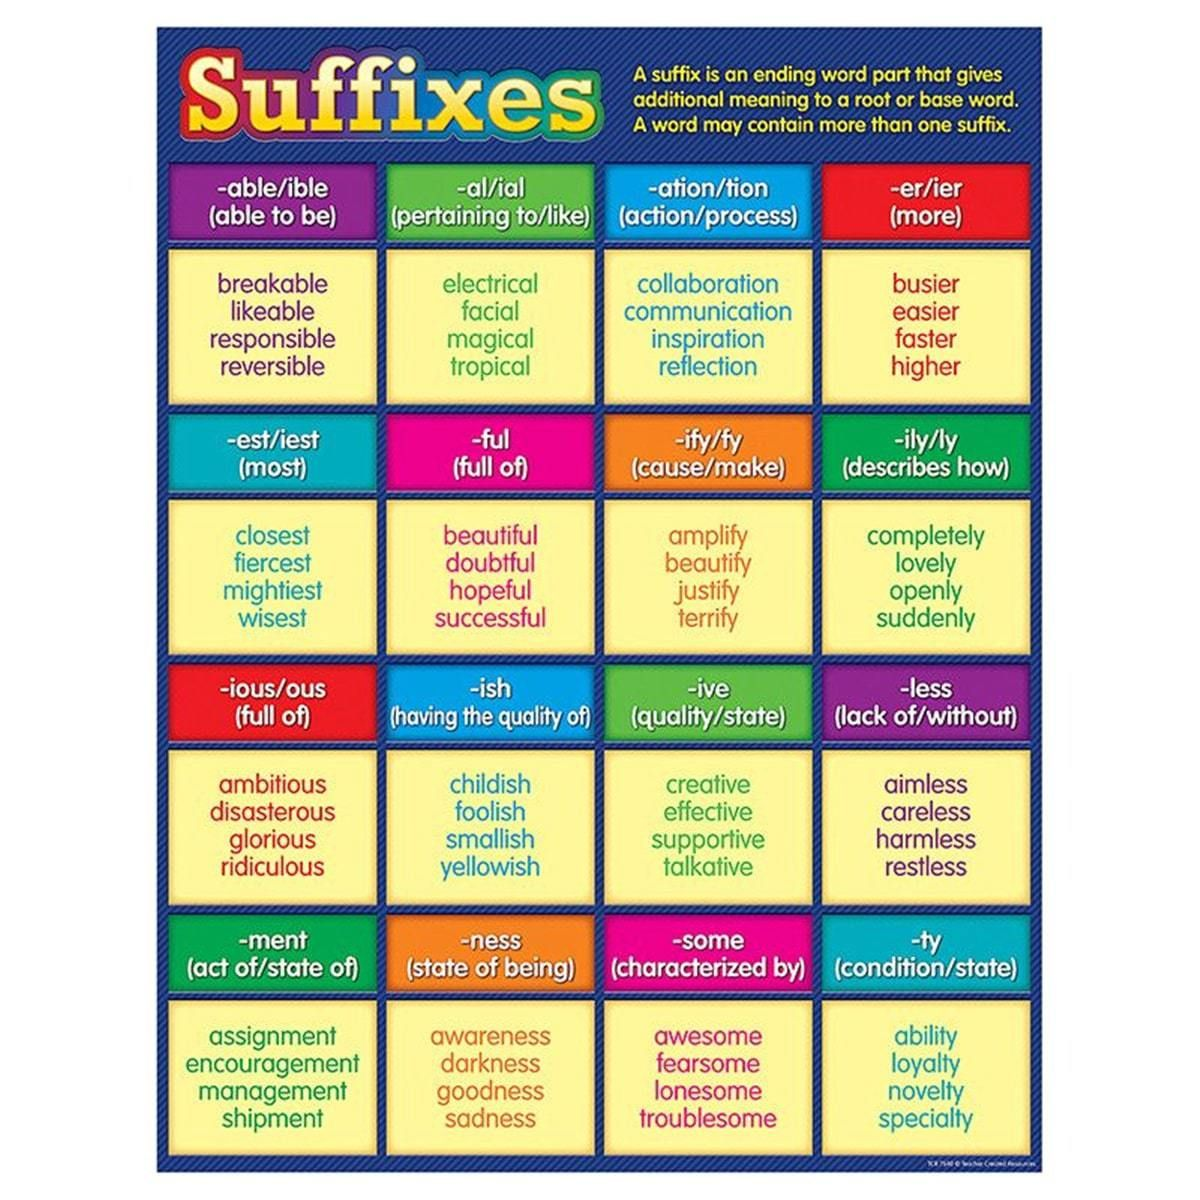 Common Suffixes In English With Meaning And Examples